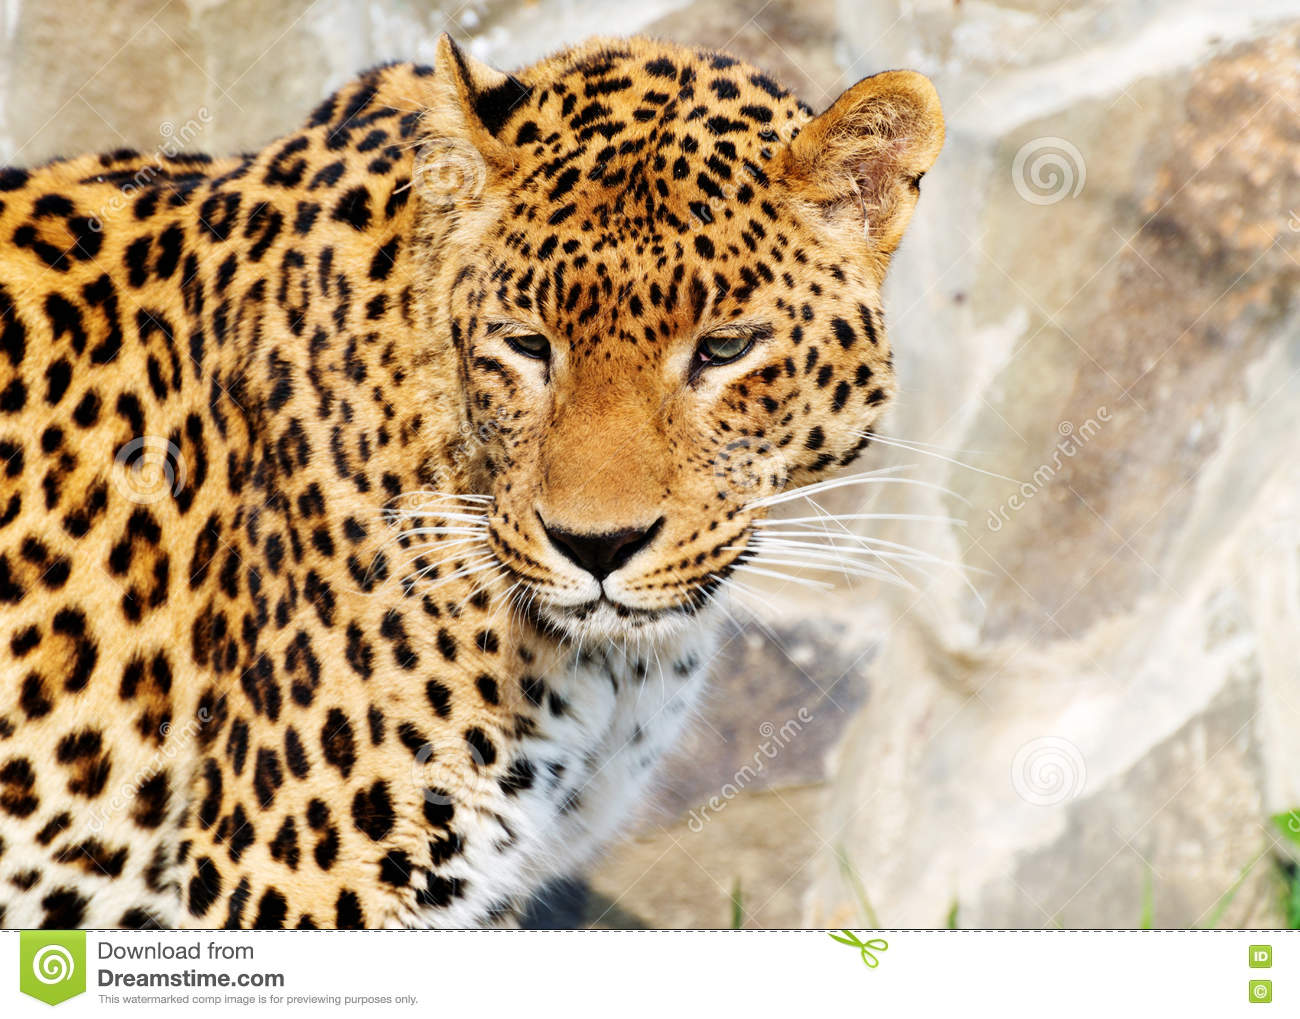 Jaguar Is Very Beautiful Strong And Clever Animal Stock Photo Image Of Head Gracious 71473574